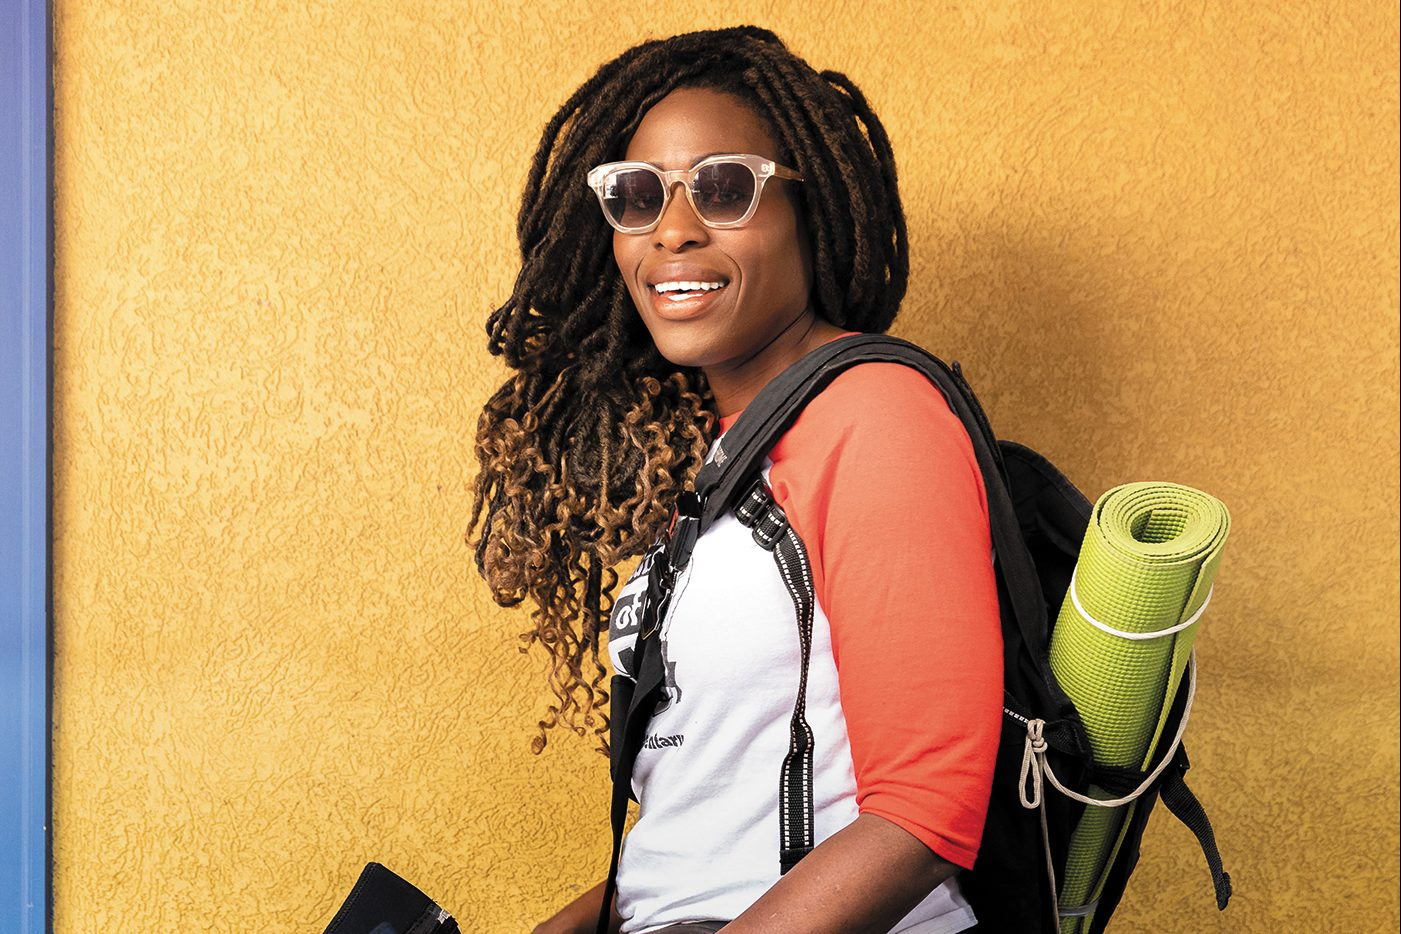 In the hopes of having quick, safe and comfortable rides, here are the bags Nkenna Onwuzuruoha has used during her 10 years cycling in SLC.